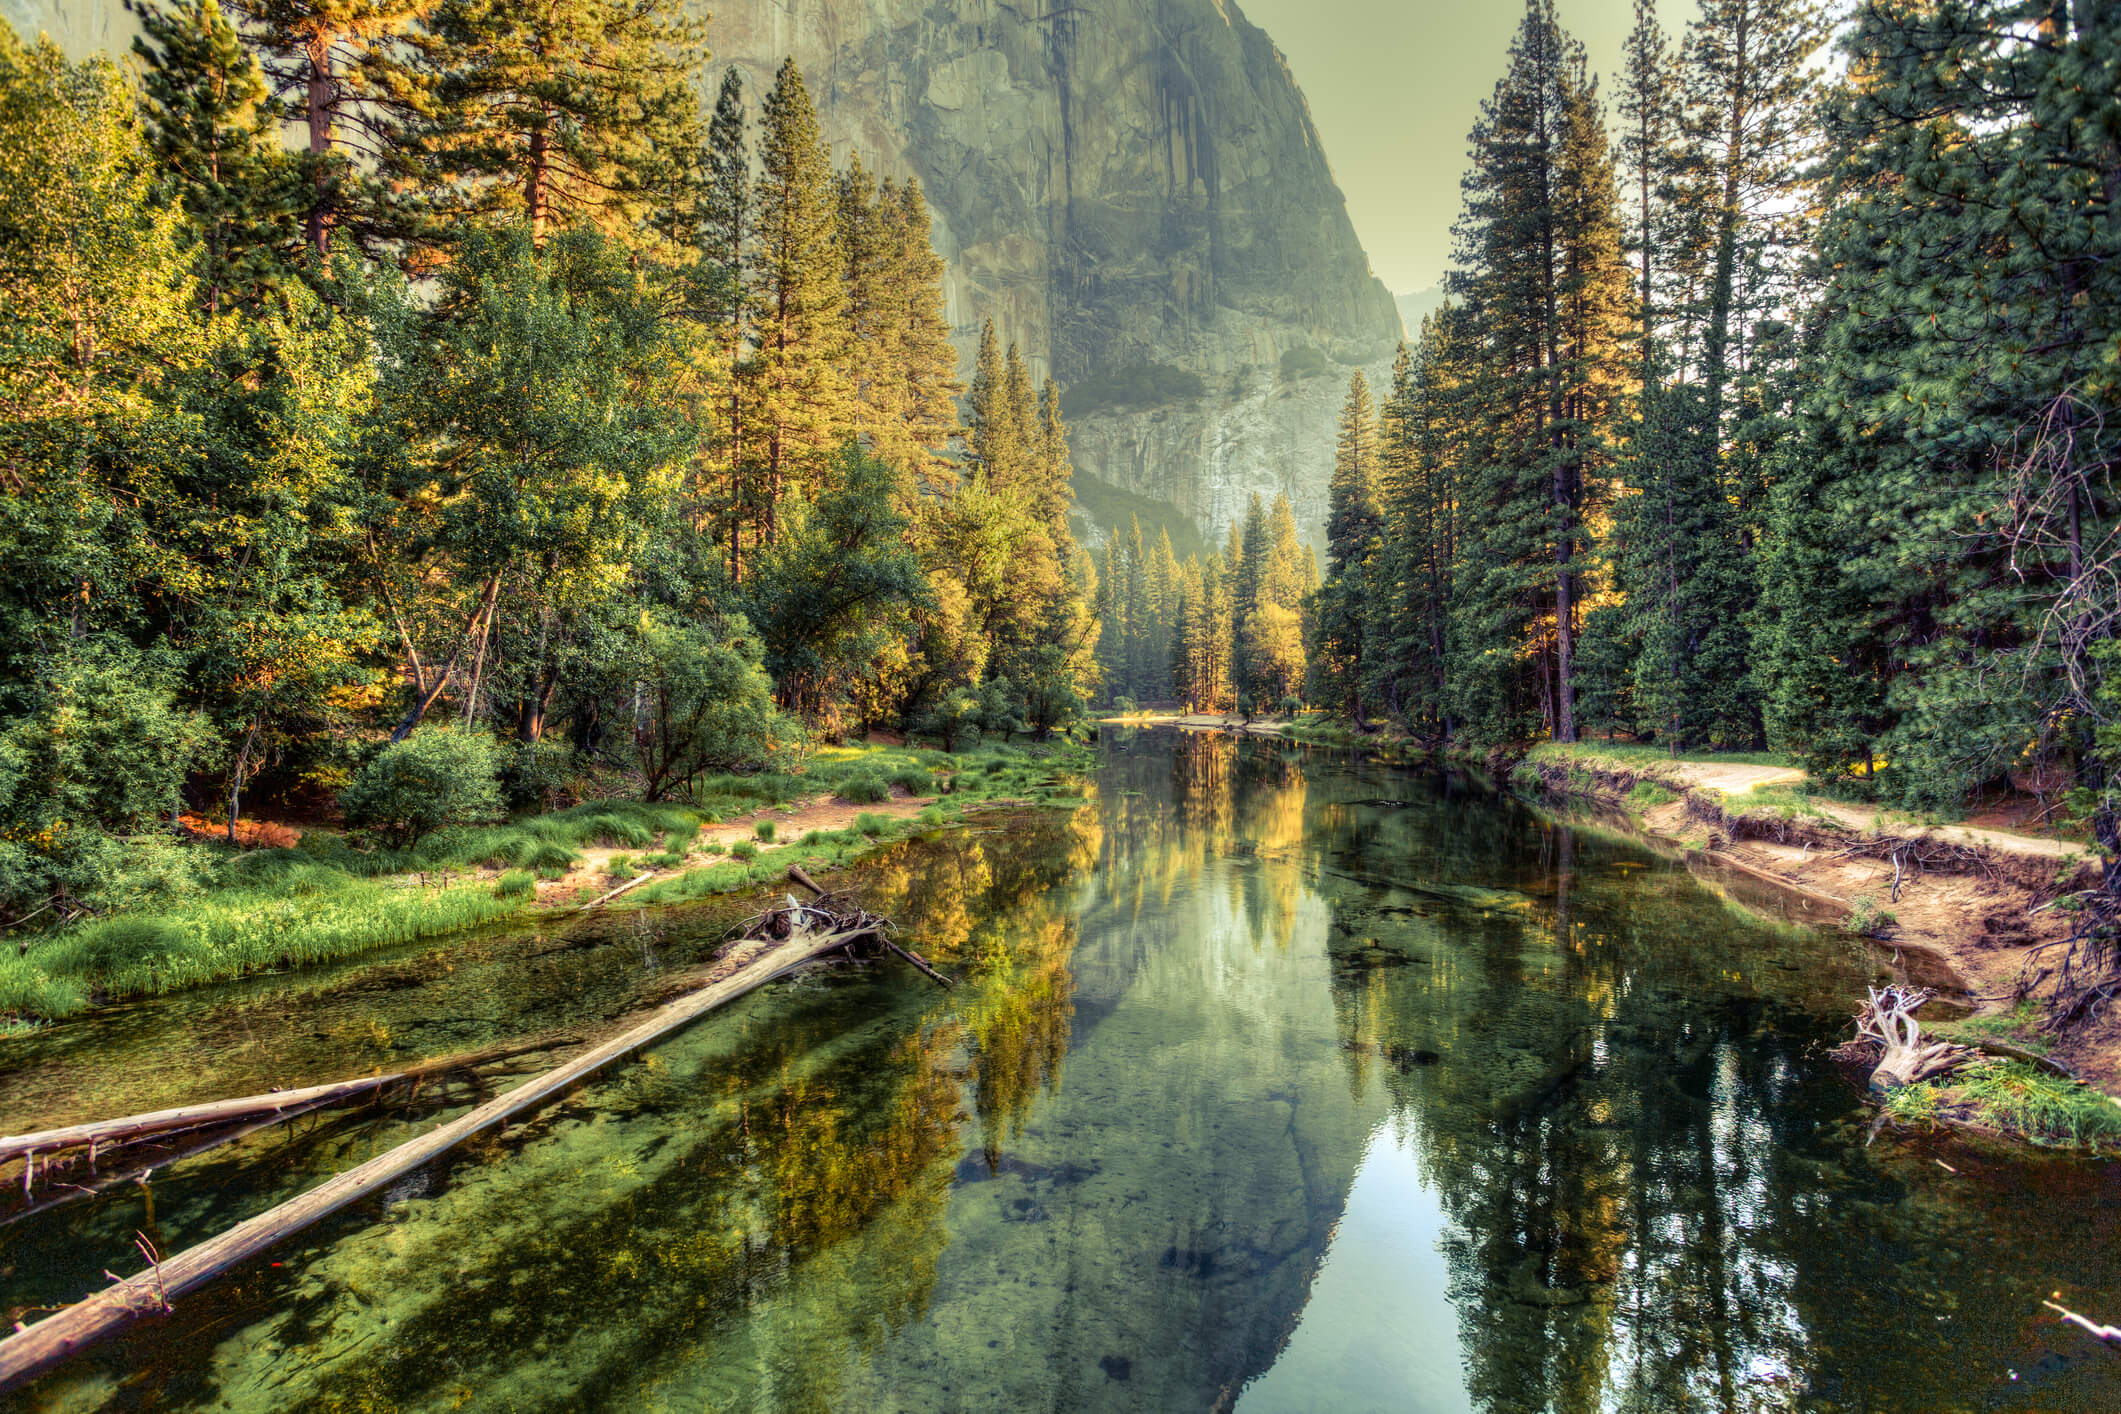 valle yosemite california